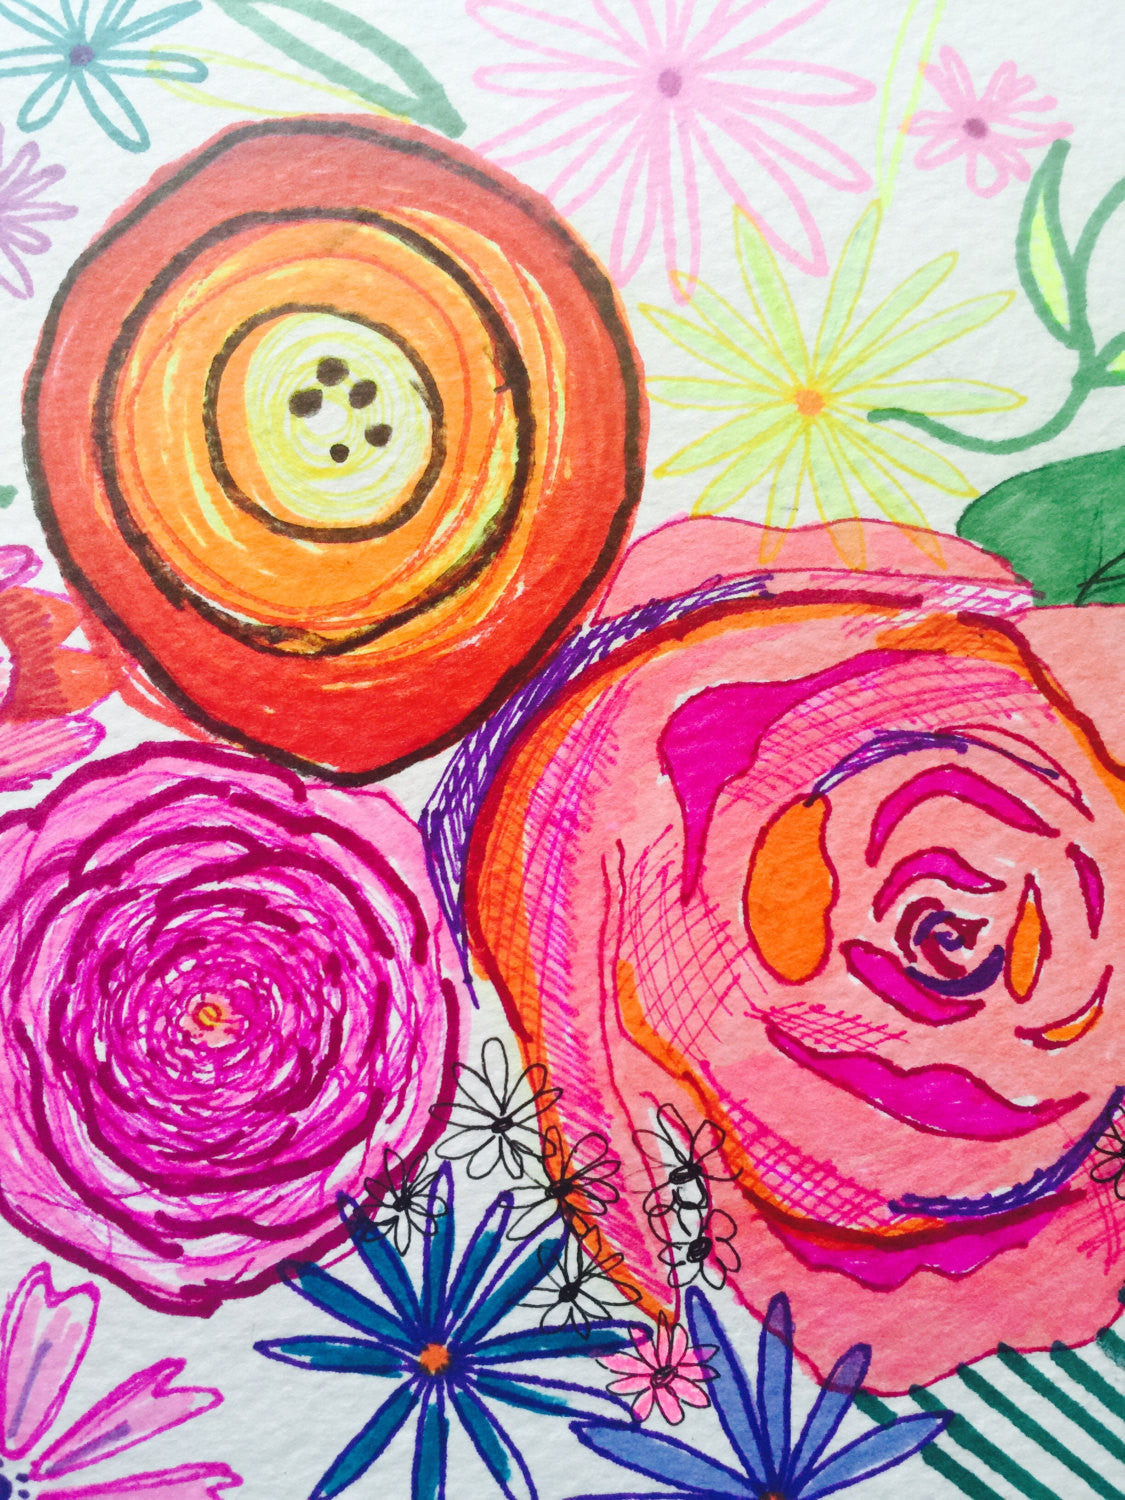 Colorful neon bright summer inspired floral watercolor + ink drawing. Unique multimedia piece with bright florals and sharp lines.